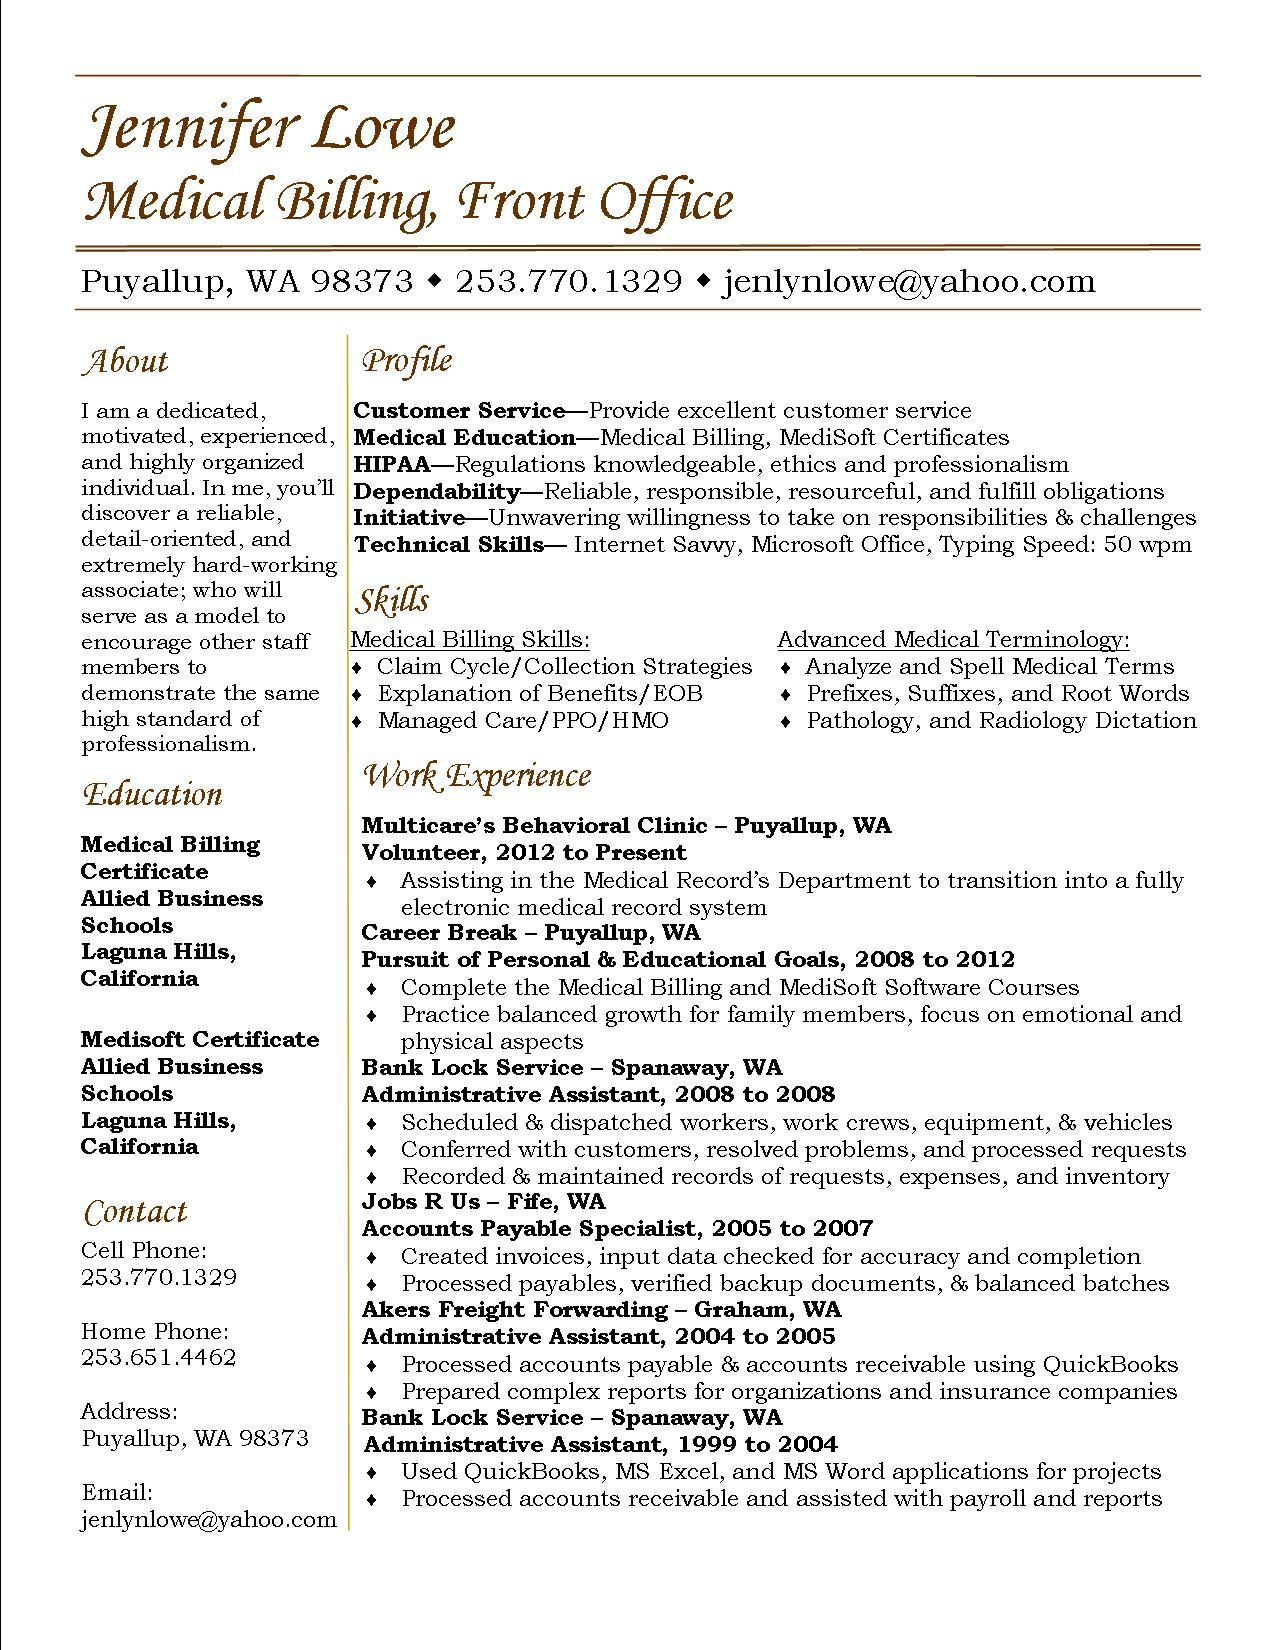 Resume Objective For Medical Billing Jennifer Lowe Resume Medical Billing Resume Career